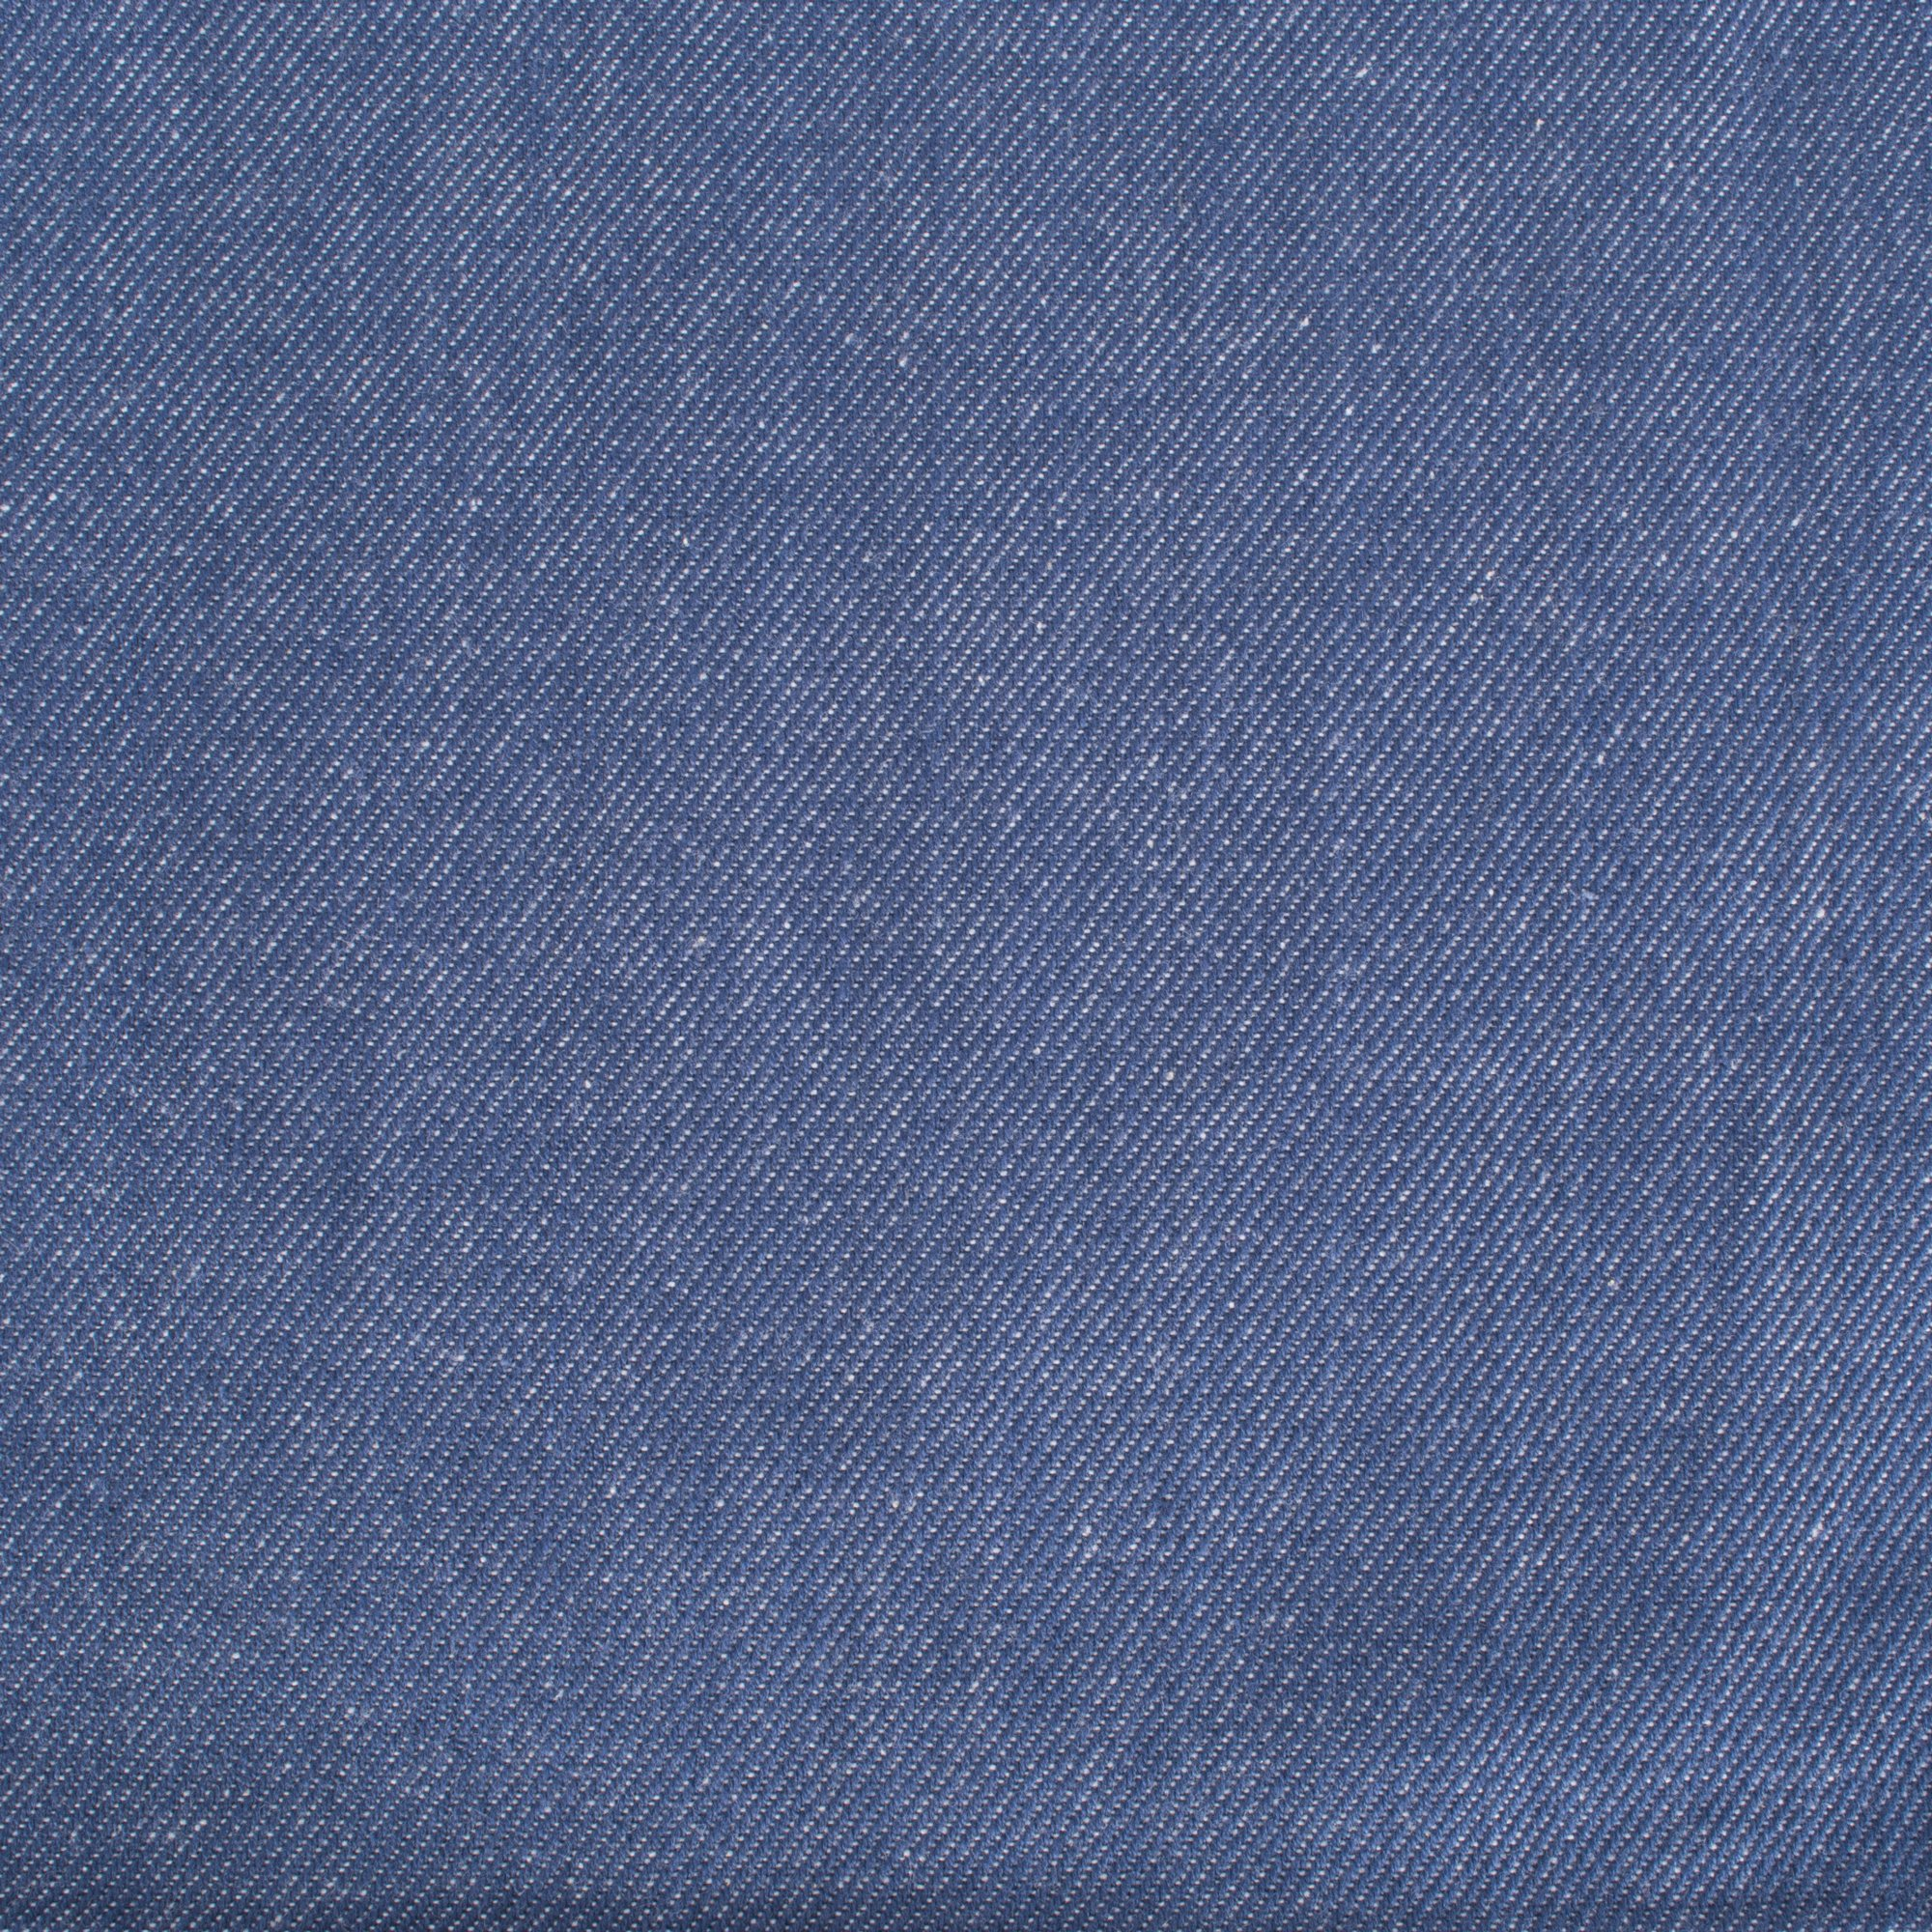 DII 100% Cotton Cloth Napkins, Oversized 20x20'' Dinner Napkins, For Basic Everyday Use, Banquets, Weddings, Events, or Family Gatherings - Set of 6, Denim by DII (Image #3)